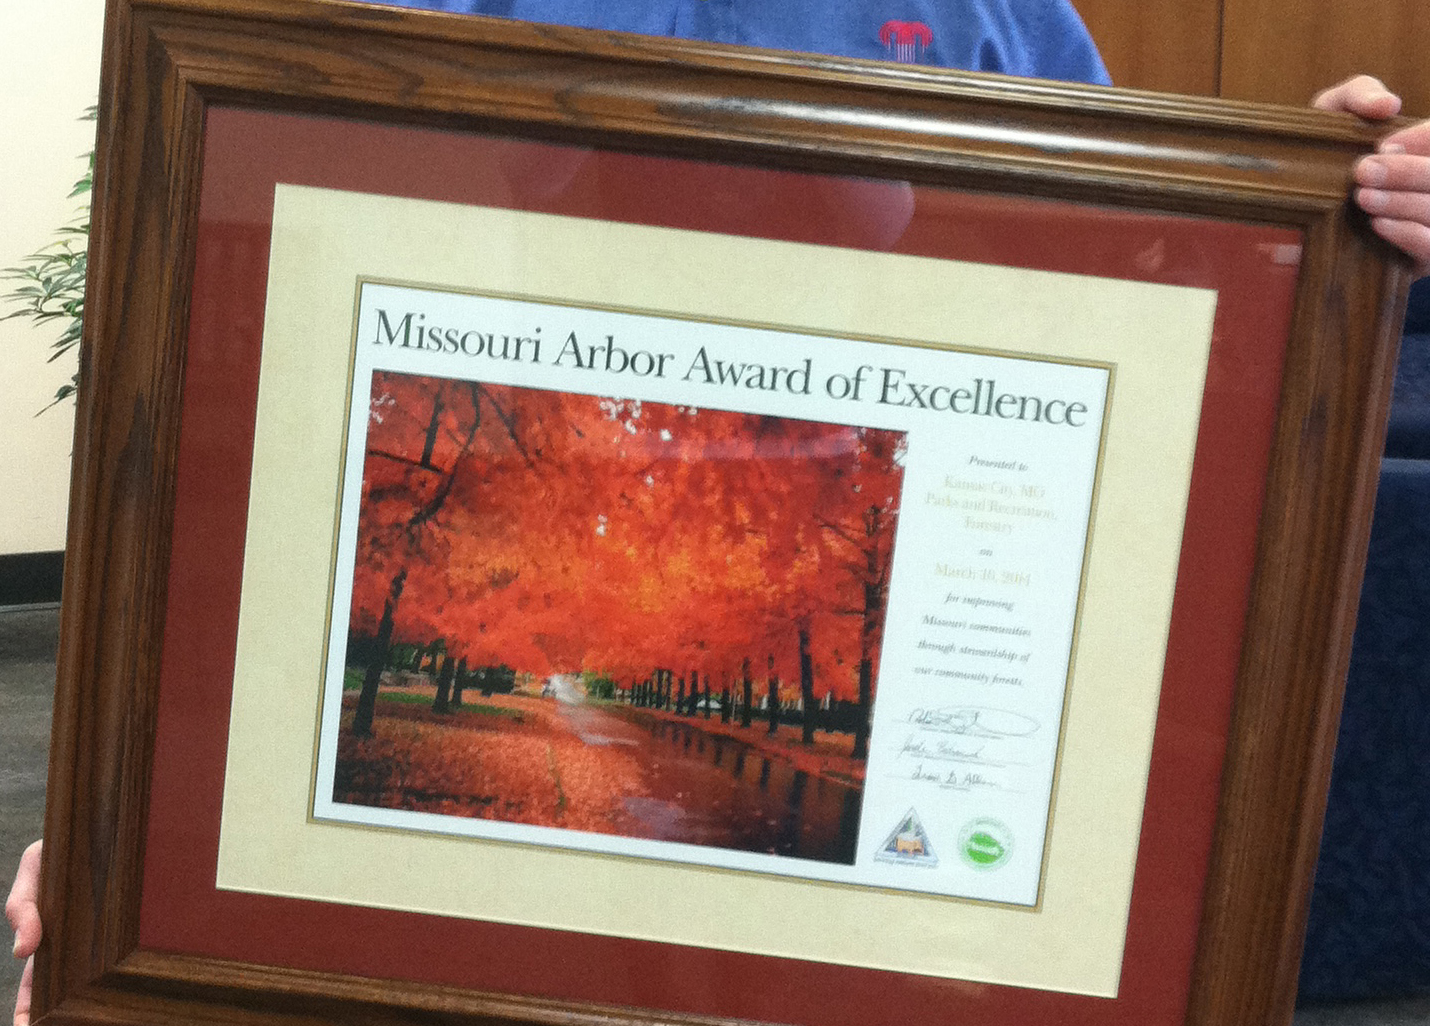 City Receives Missouri Arbor Award of Excellence for Proactive Emerald Ash Borer Management